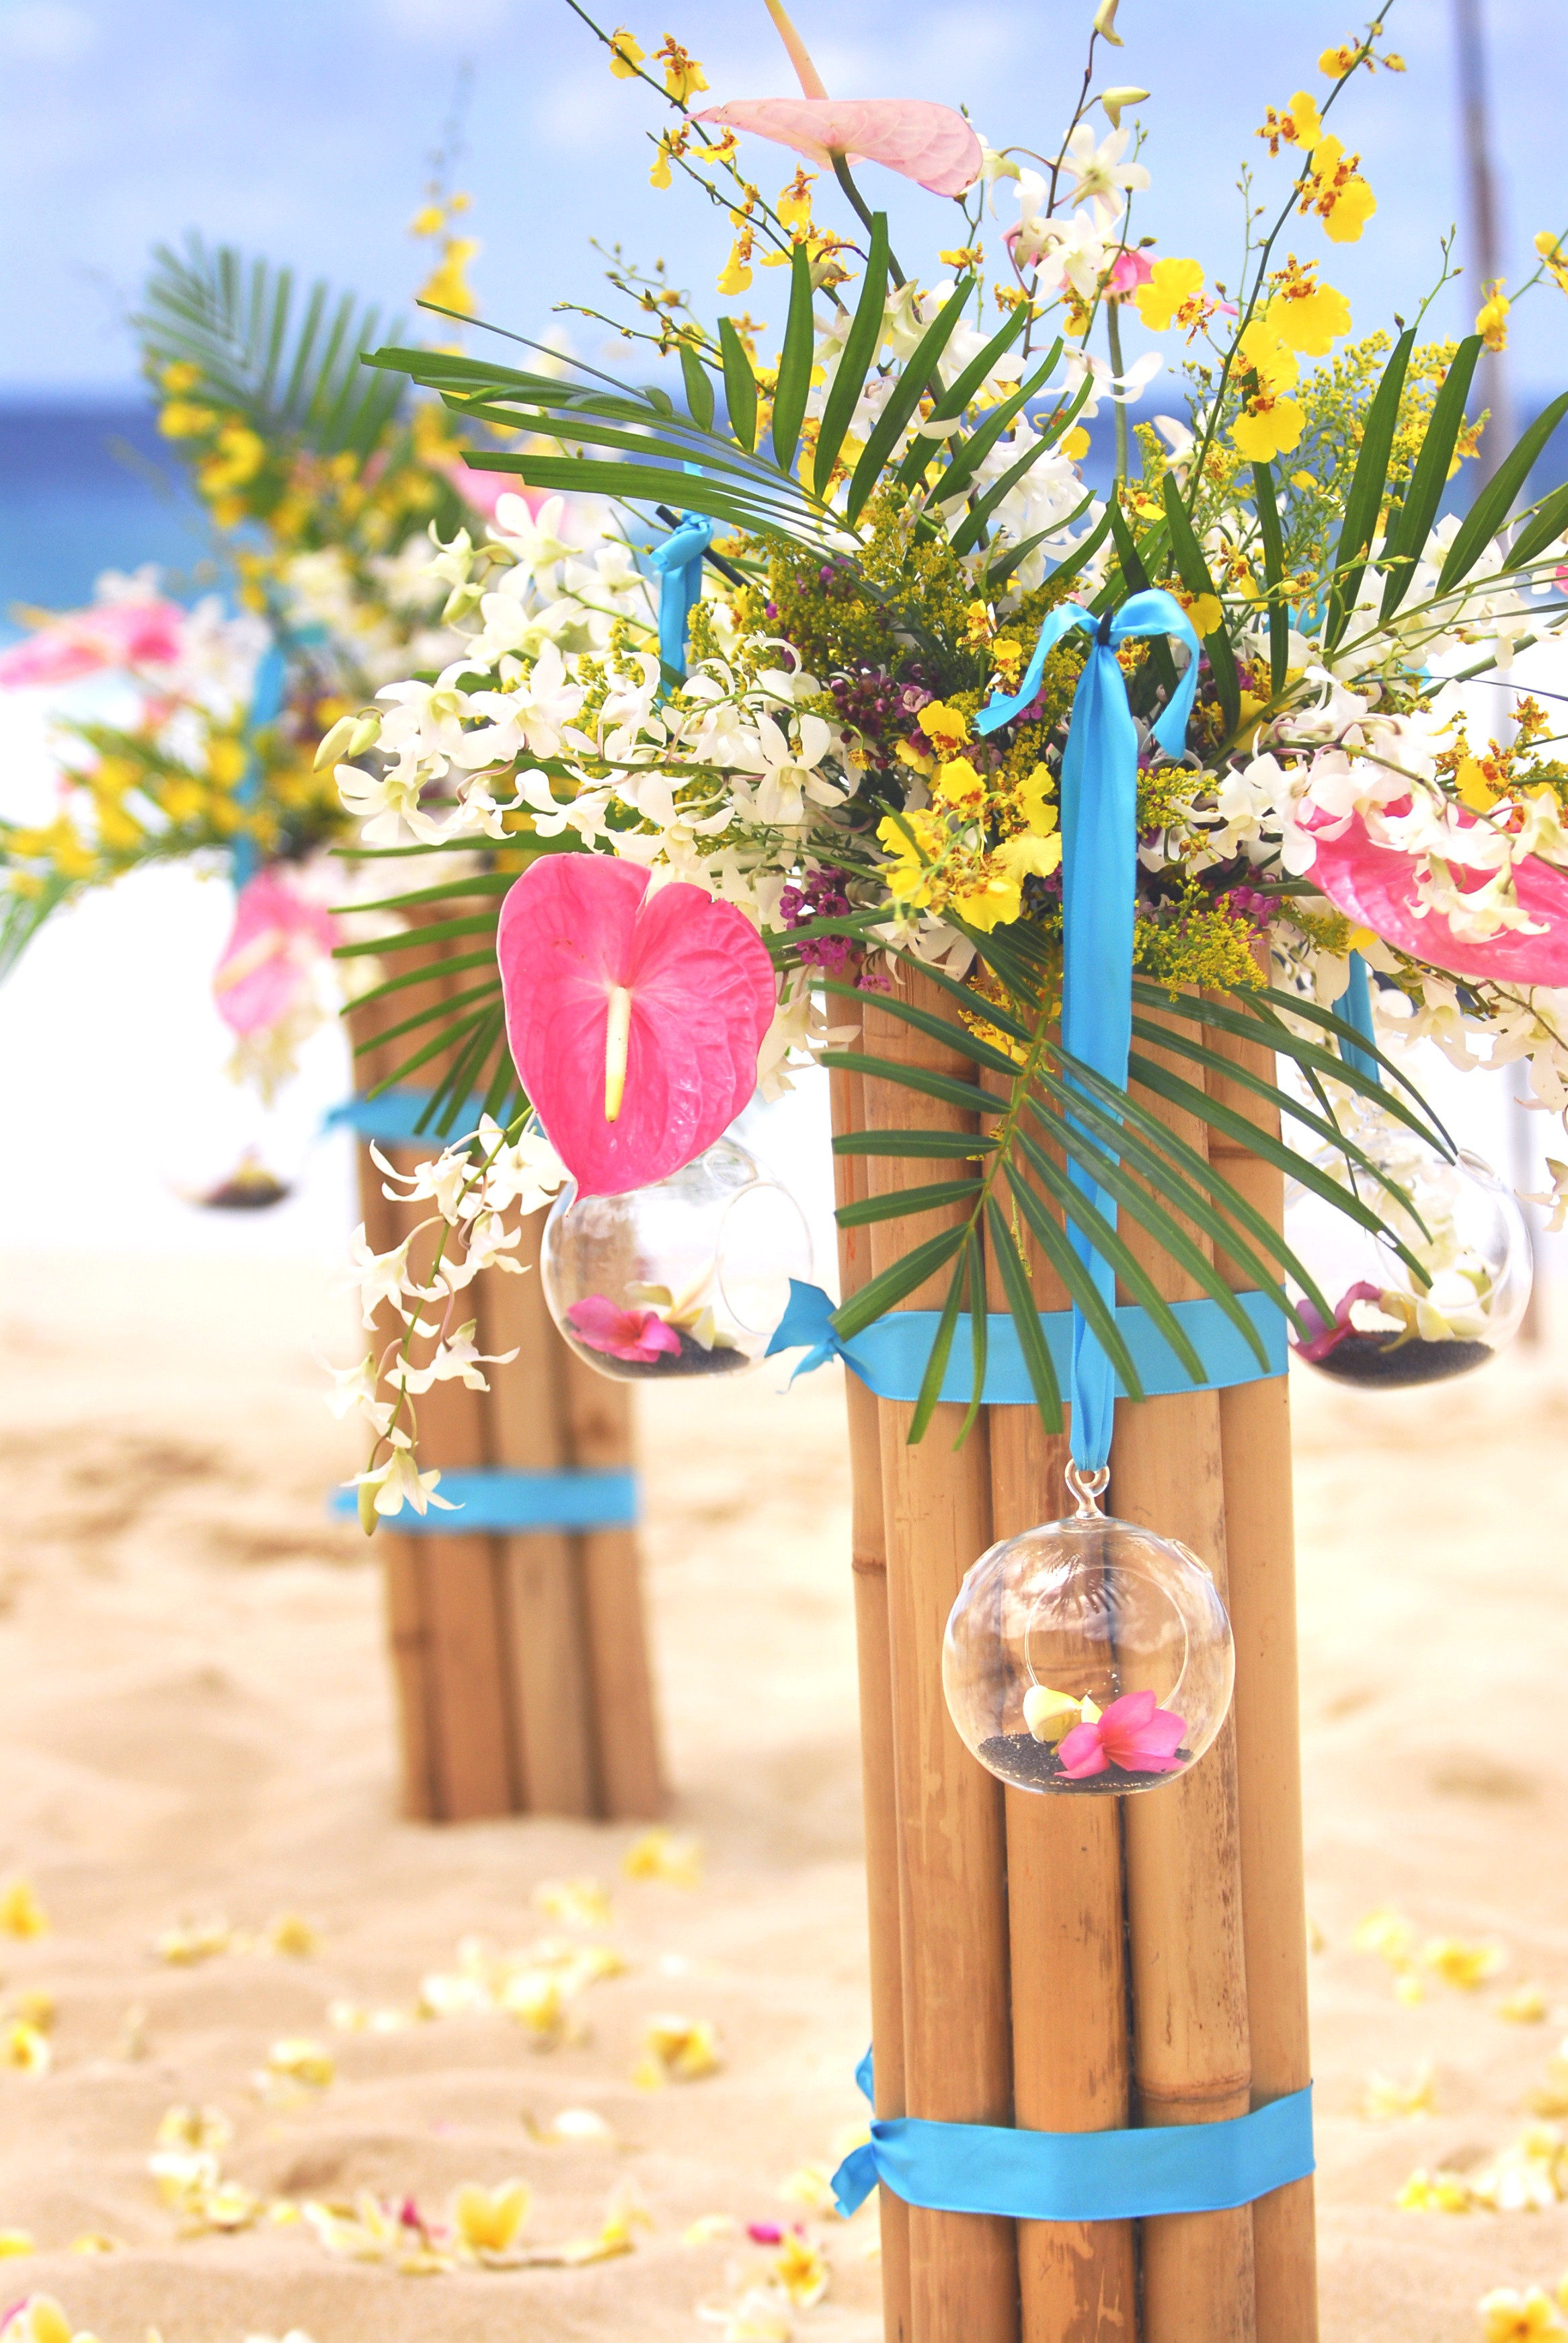 Hawaiian Party Decoration Ideas Unique Hawaiian theme Party Decoration Ideas – Party themes Inspiration Photos